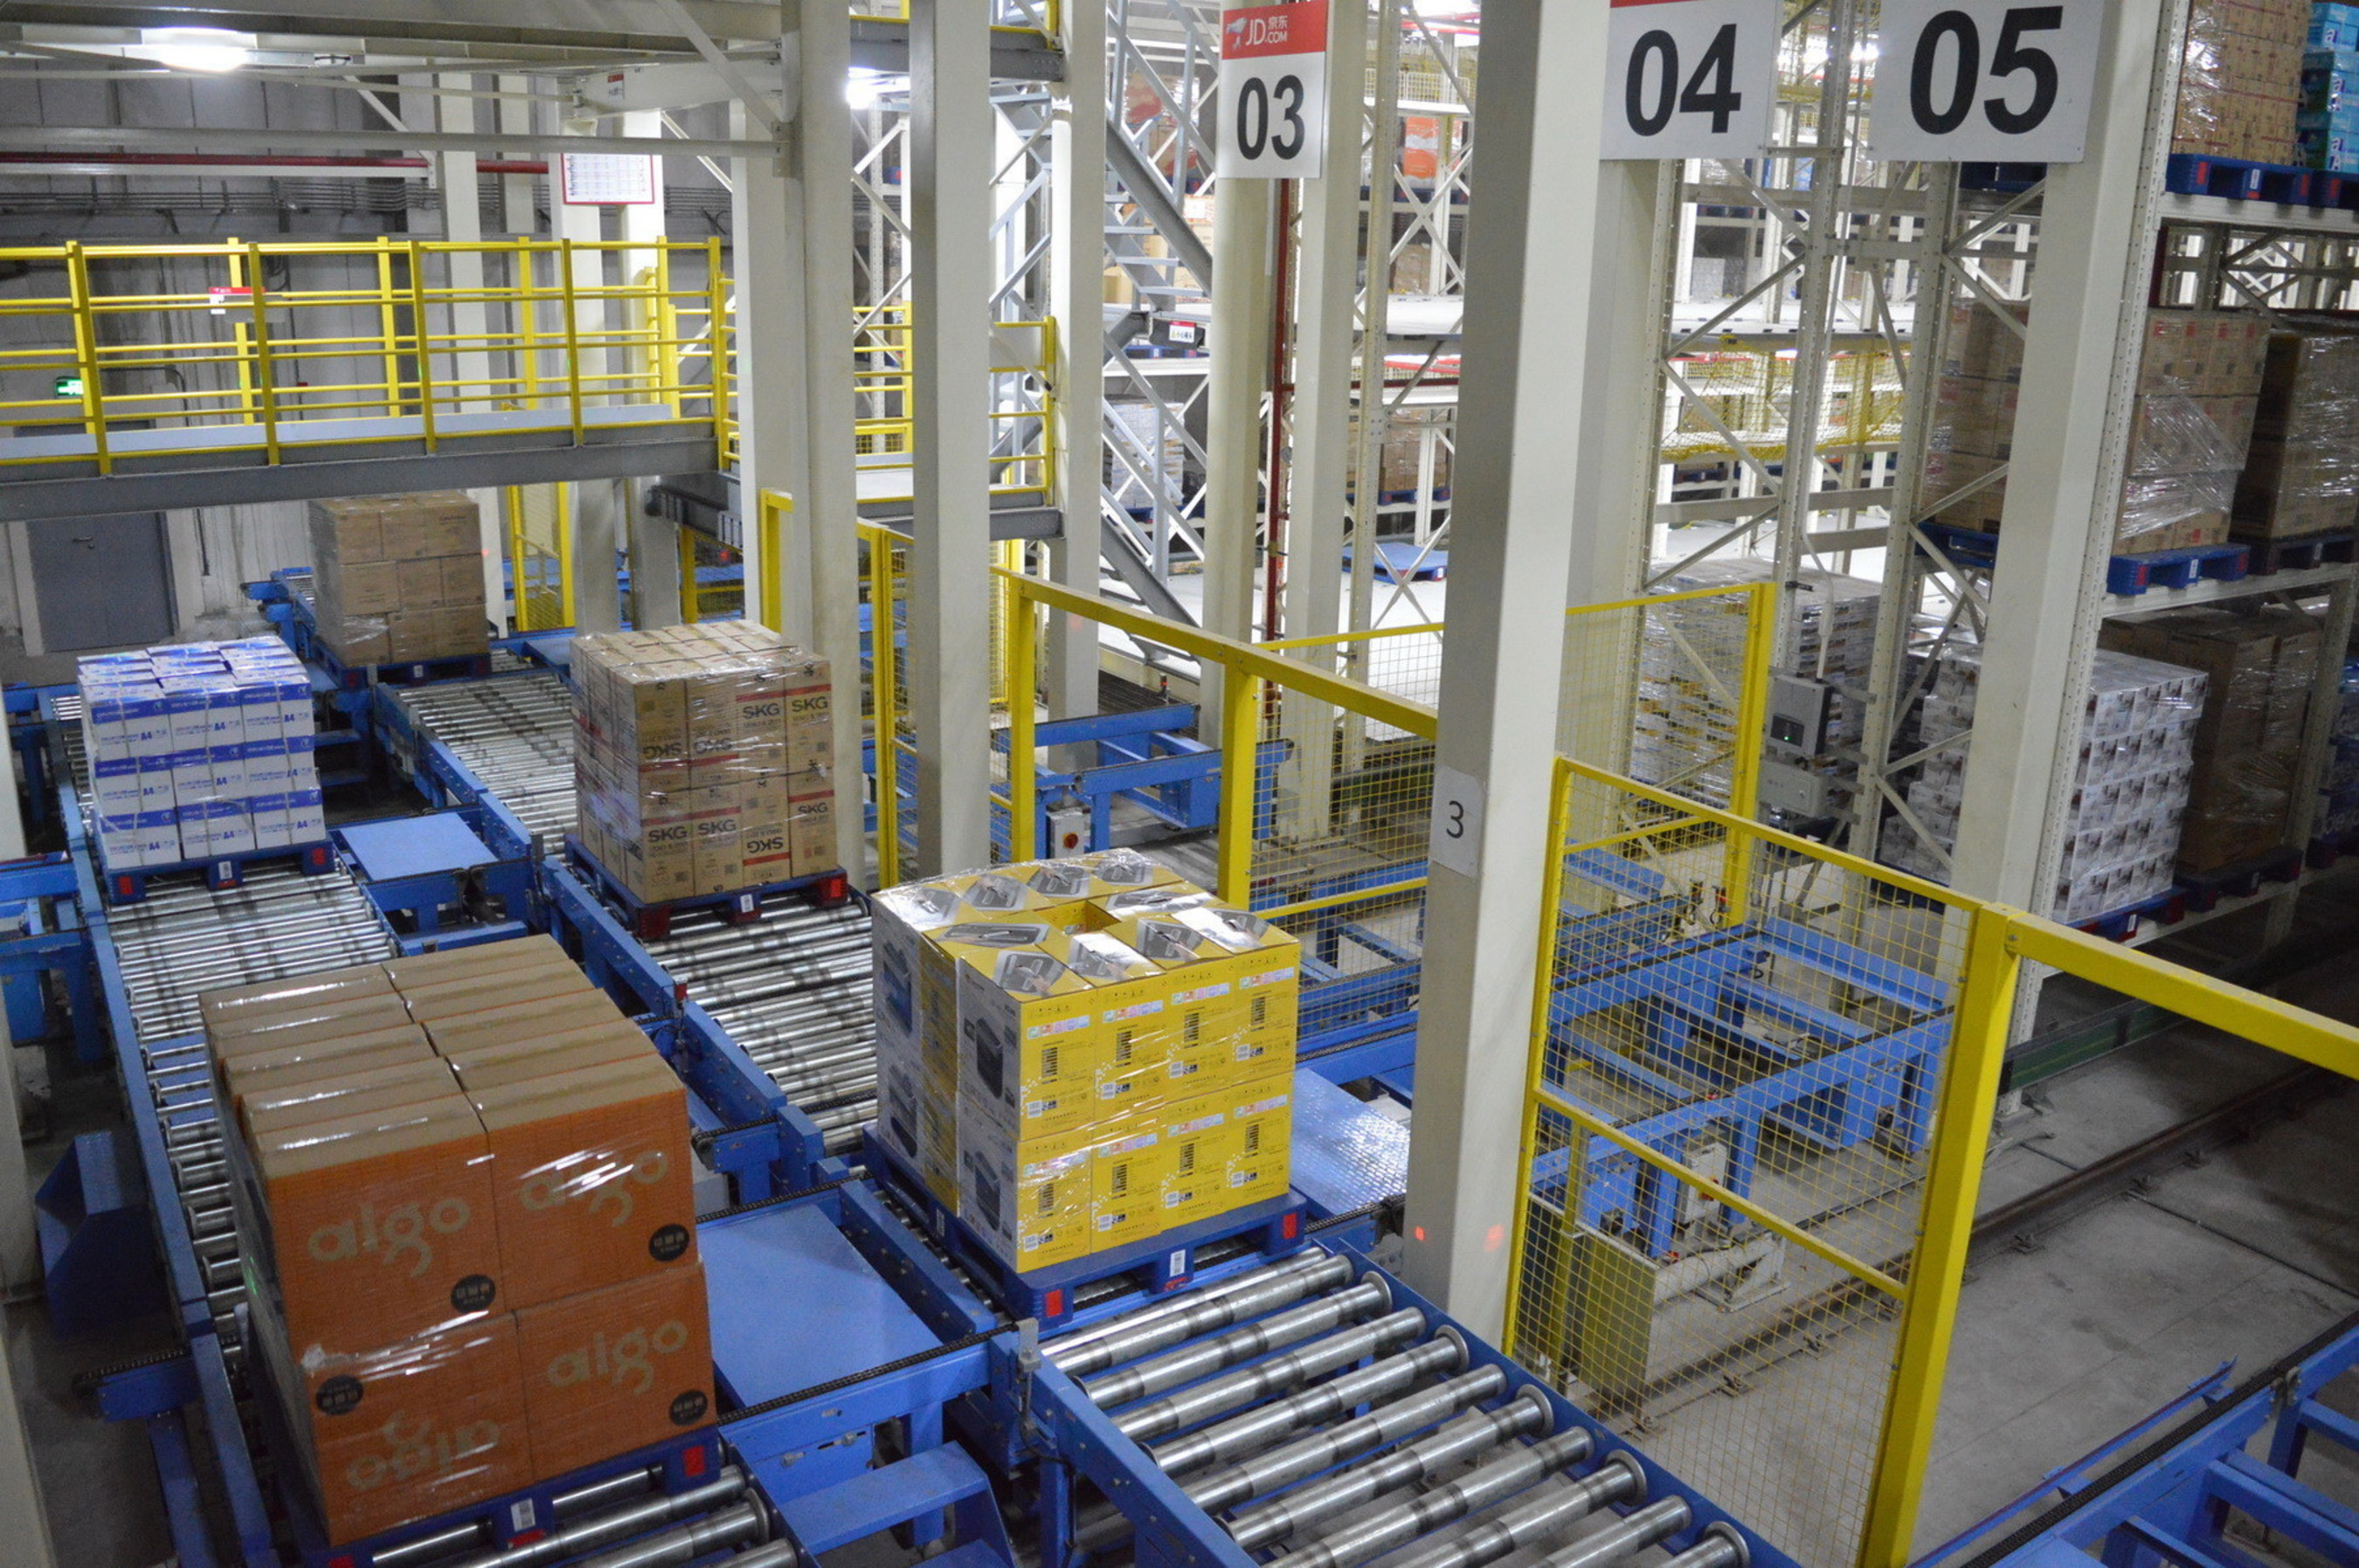 JD.com launched the initial phase of its Asia No. 1 Shanghai warehouse on October 20, 2014